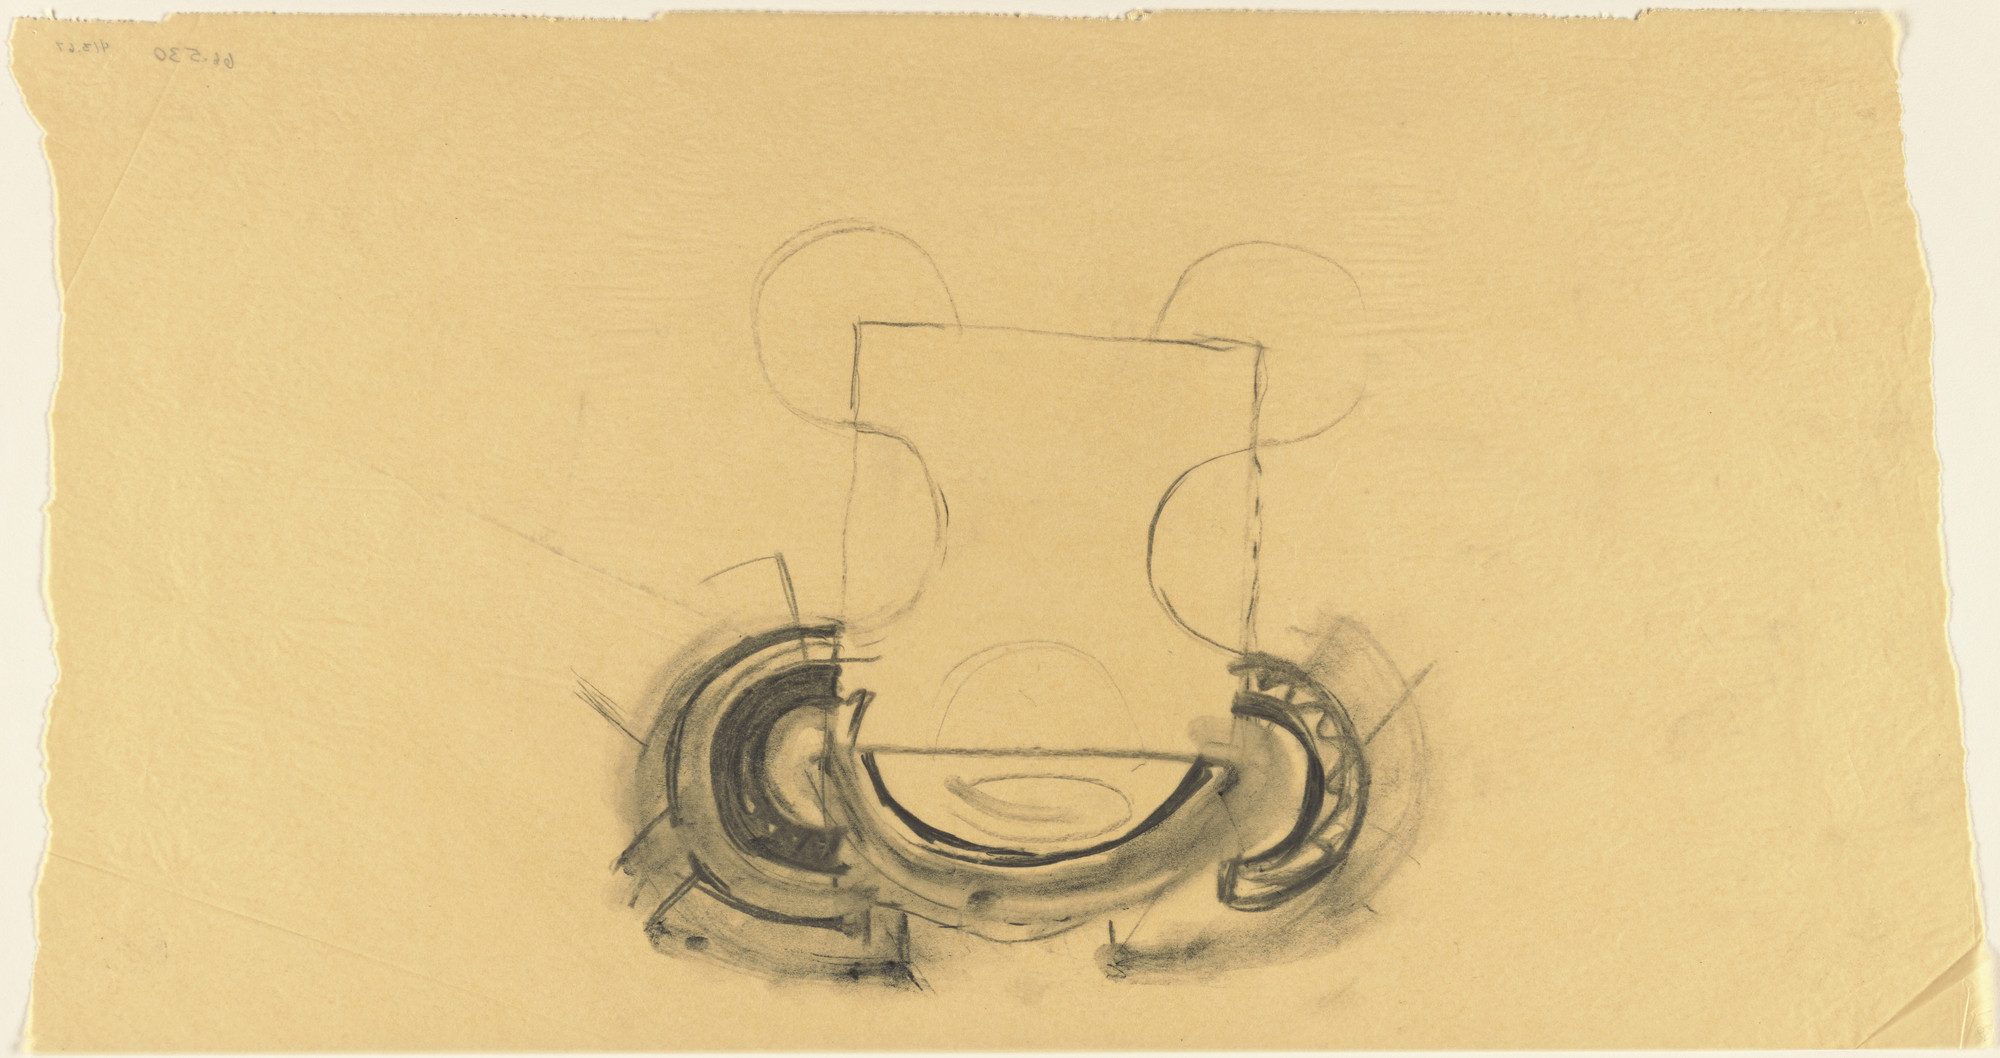 Louis I. Kahn. Sher-e-Bangla Nagar, Capital of Bangladesh, Dhaka, Bangladesh, Prayer Hall: plan sketch. 1965